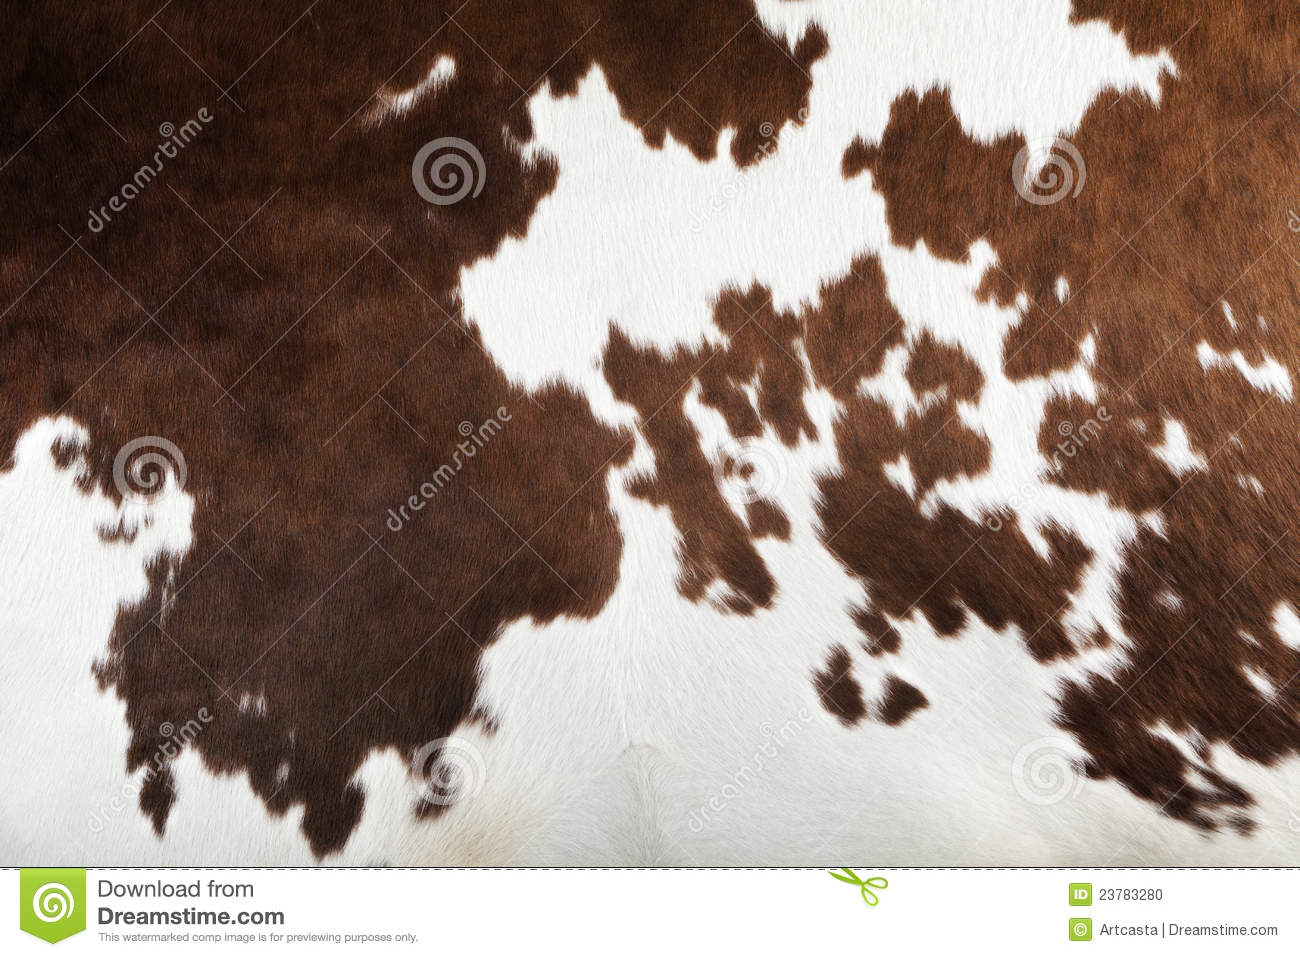 Animal Farm Wallpaper Real Cow Skin Texture Stock Photo Image Of Background